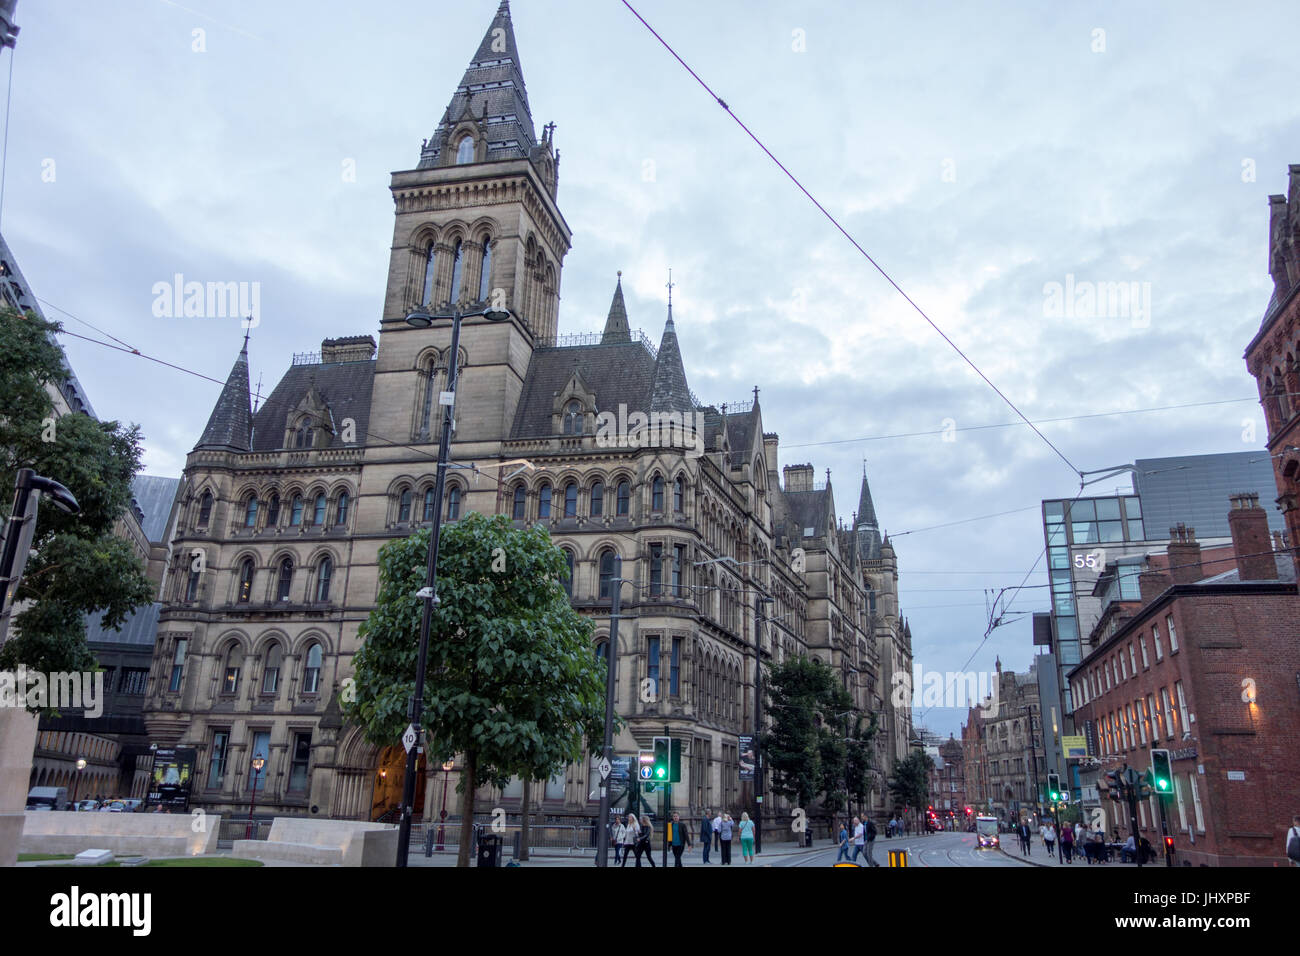 Manchester Town Hall, Manchester, UK - rear view in the evening - Stock Image